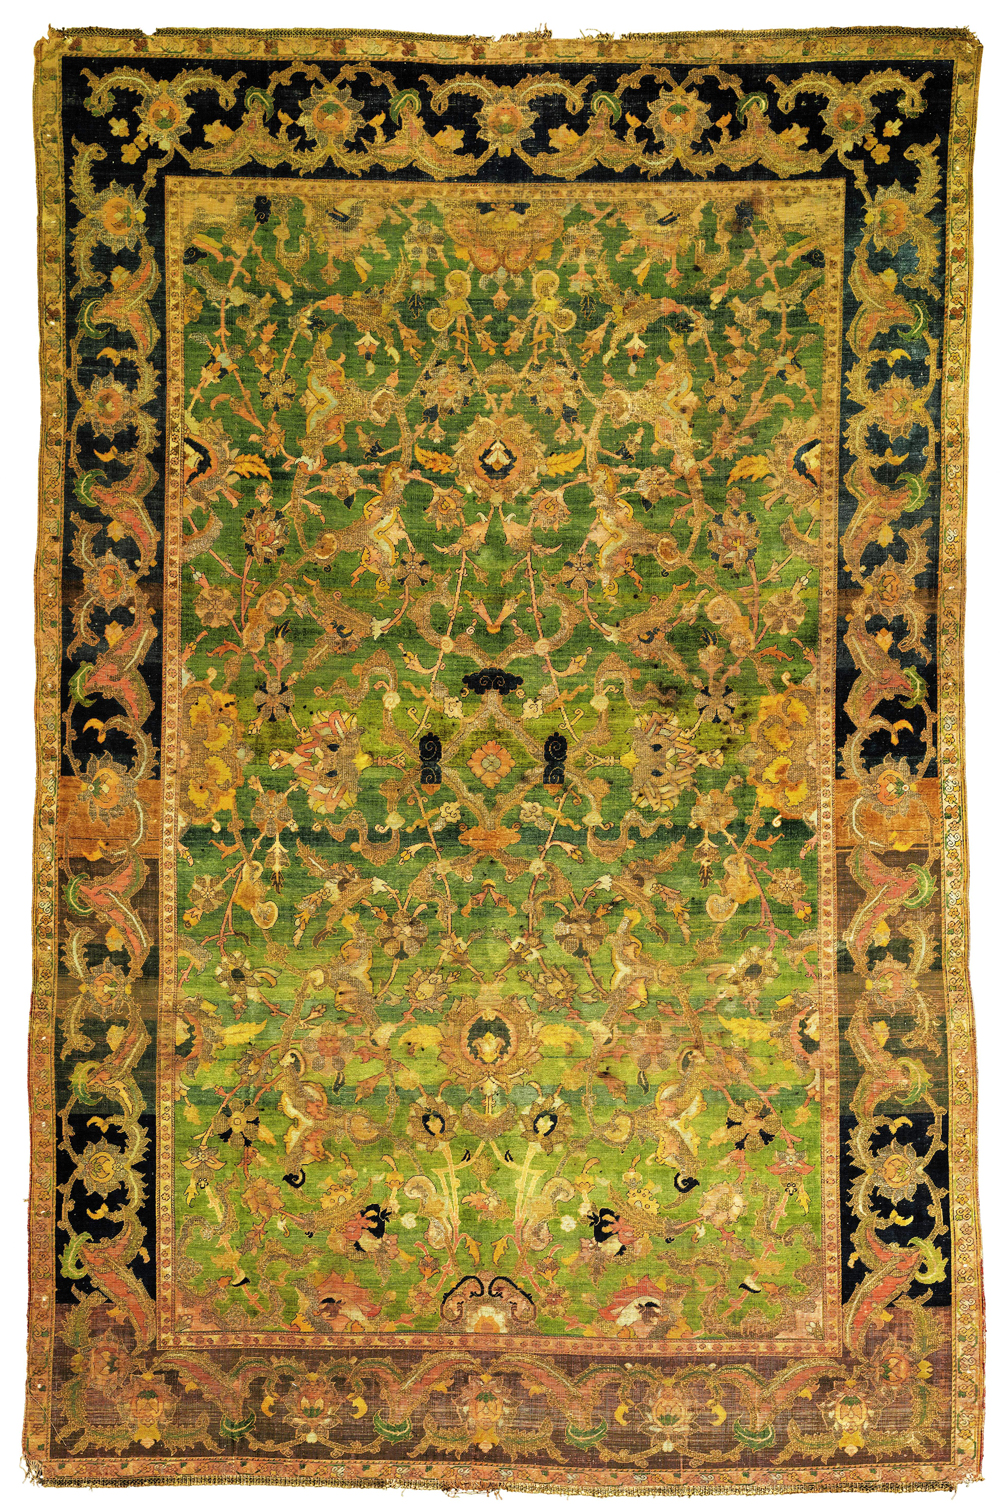 Lot 68, THE KING UMBERTO II 'POLONAISE' RUG, Property from a Renowned Private Collection, A 'POLONAISE' SILK AND METAL-THREAD RUG, ISPHAHAN OR KASHAN, CENTRAL PERSIA, 17th century